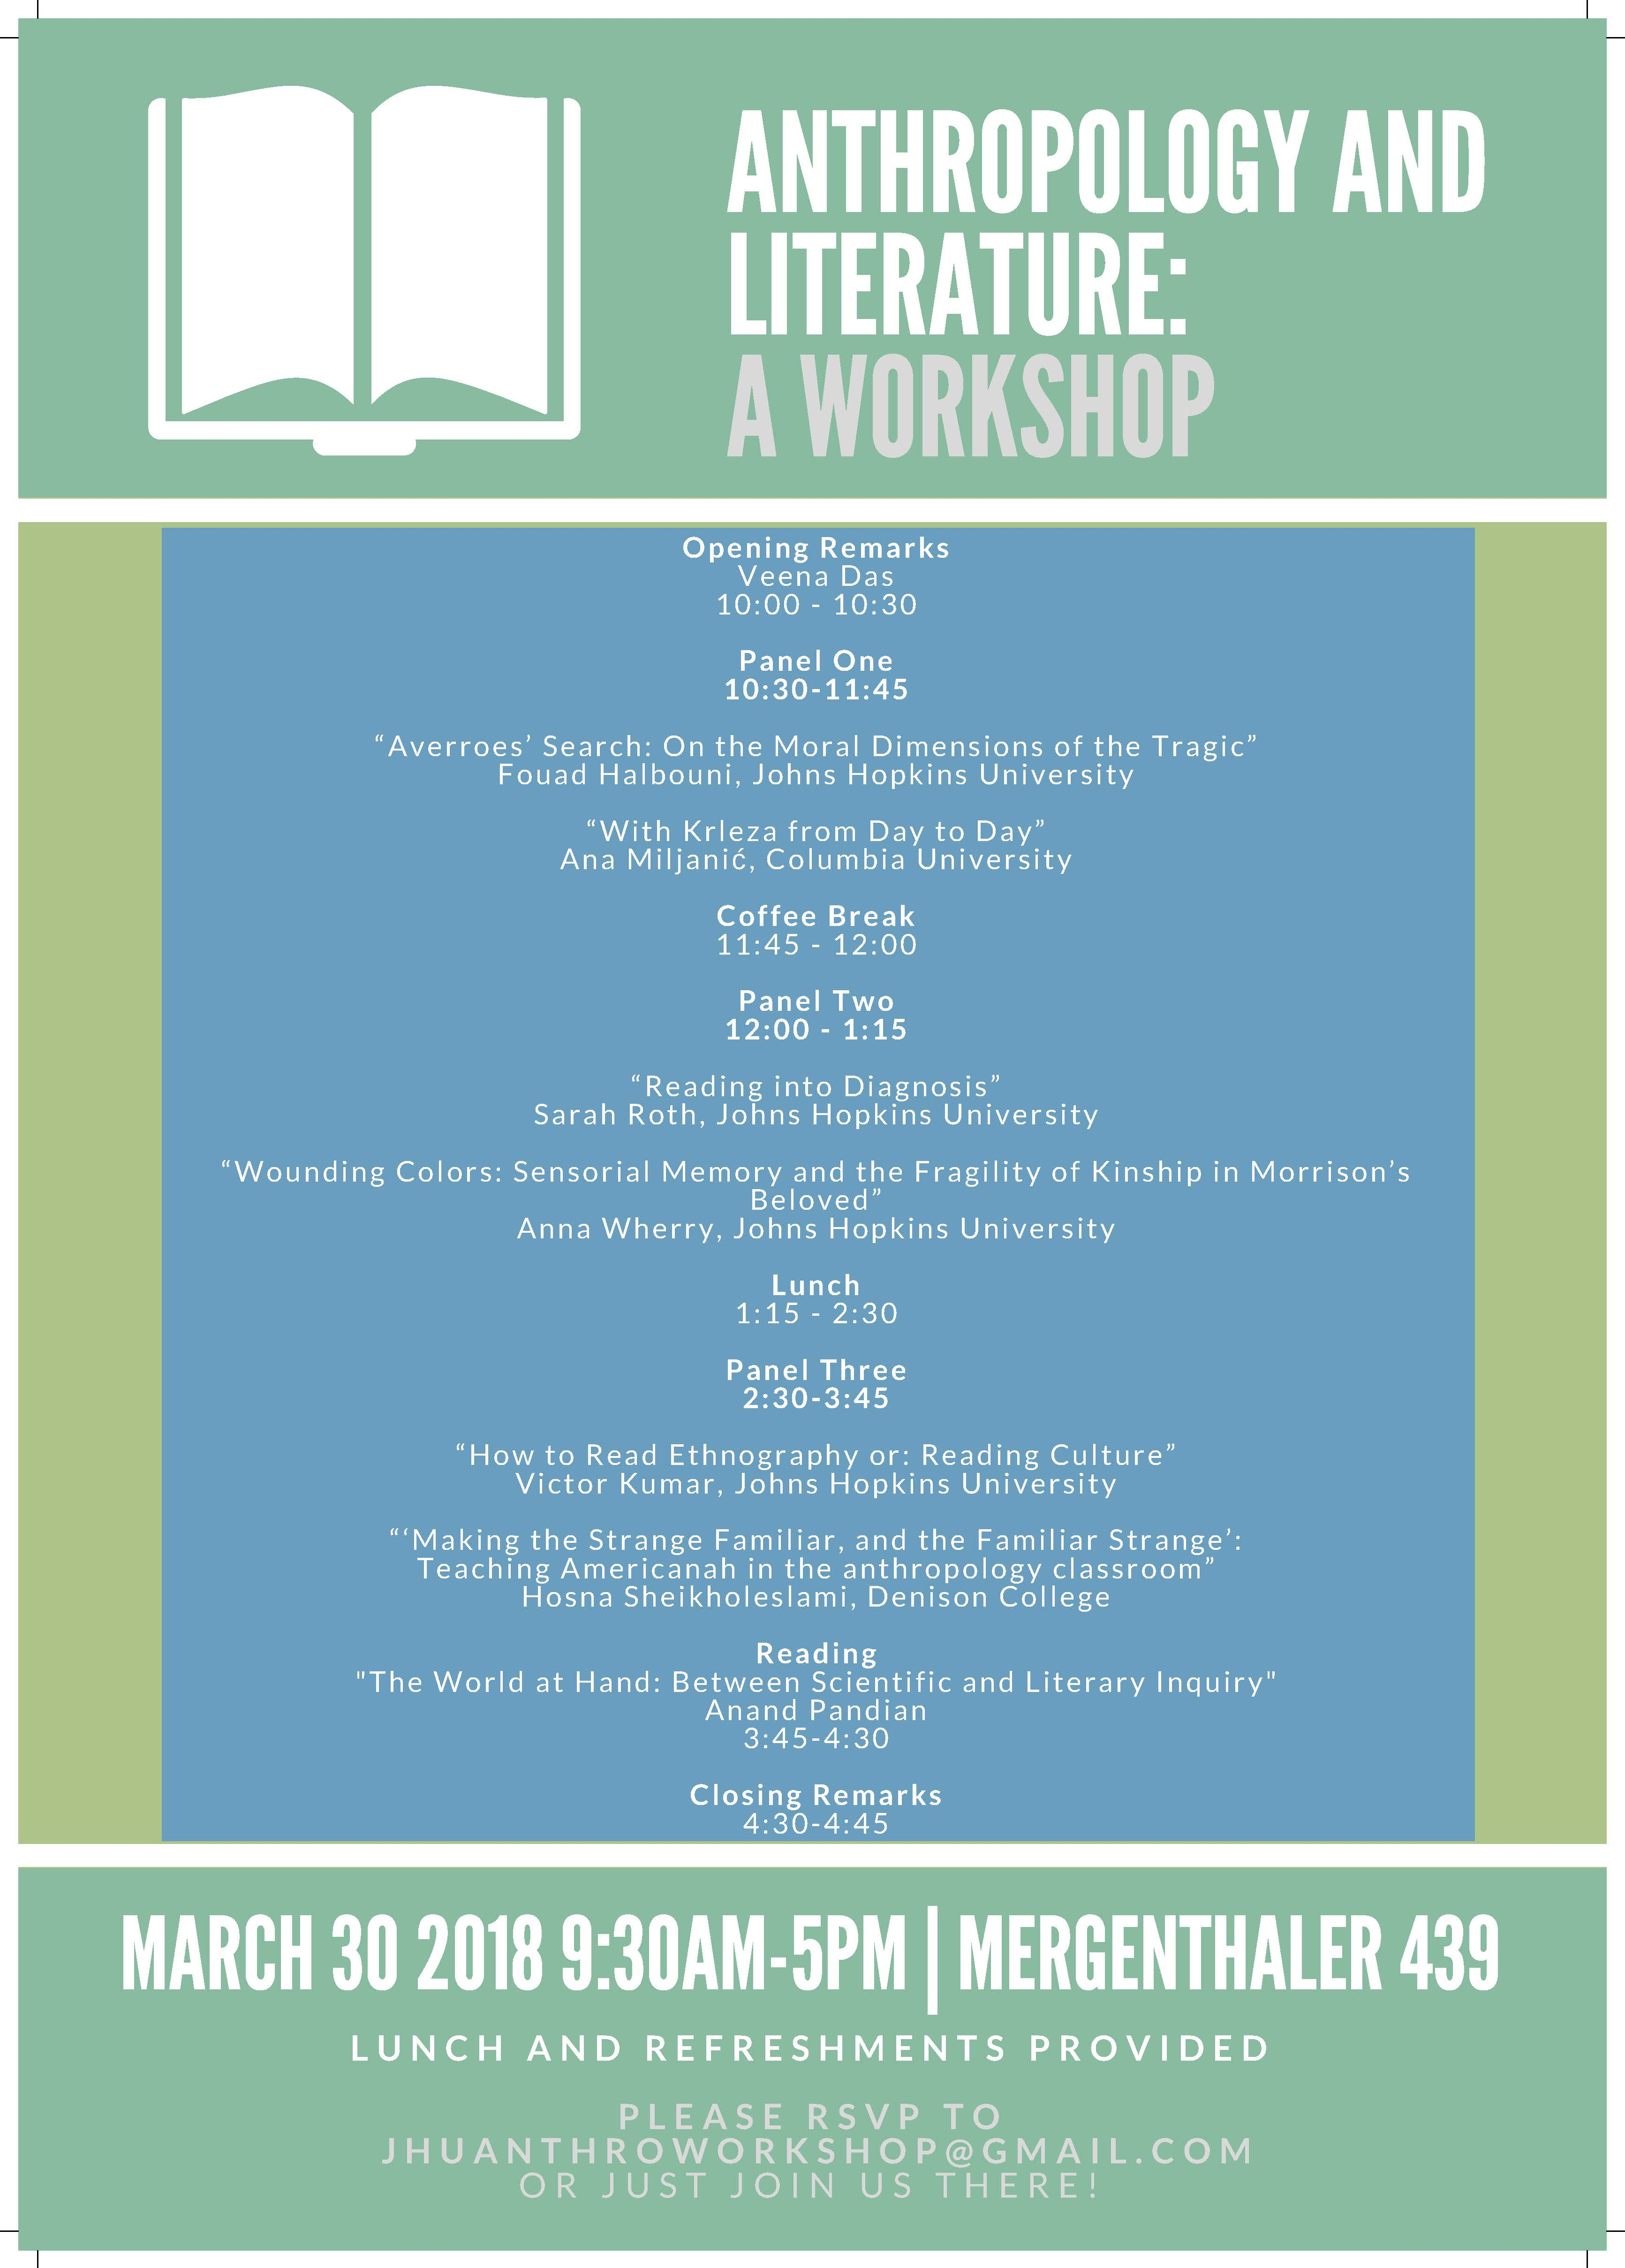 Anthropology and Literature: A Workshop